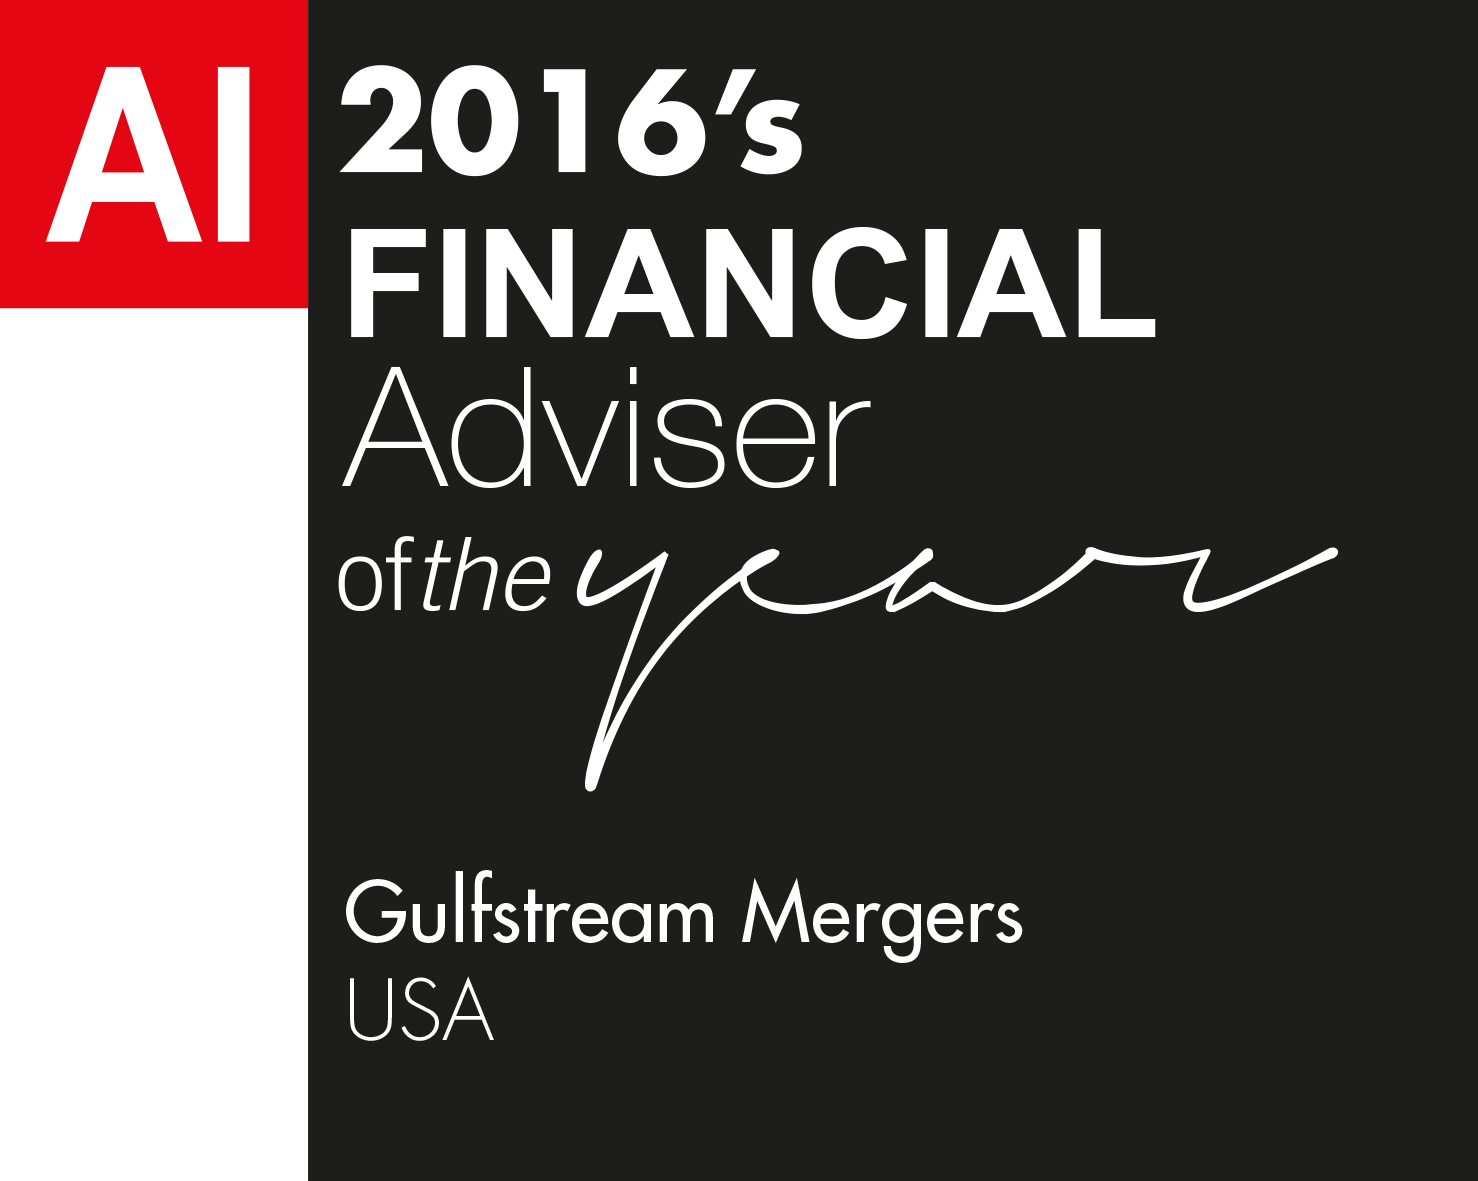 Financial Adviser of the Year Award